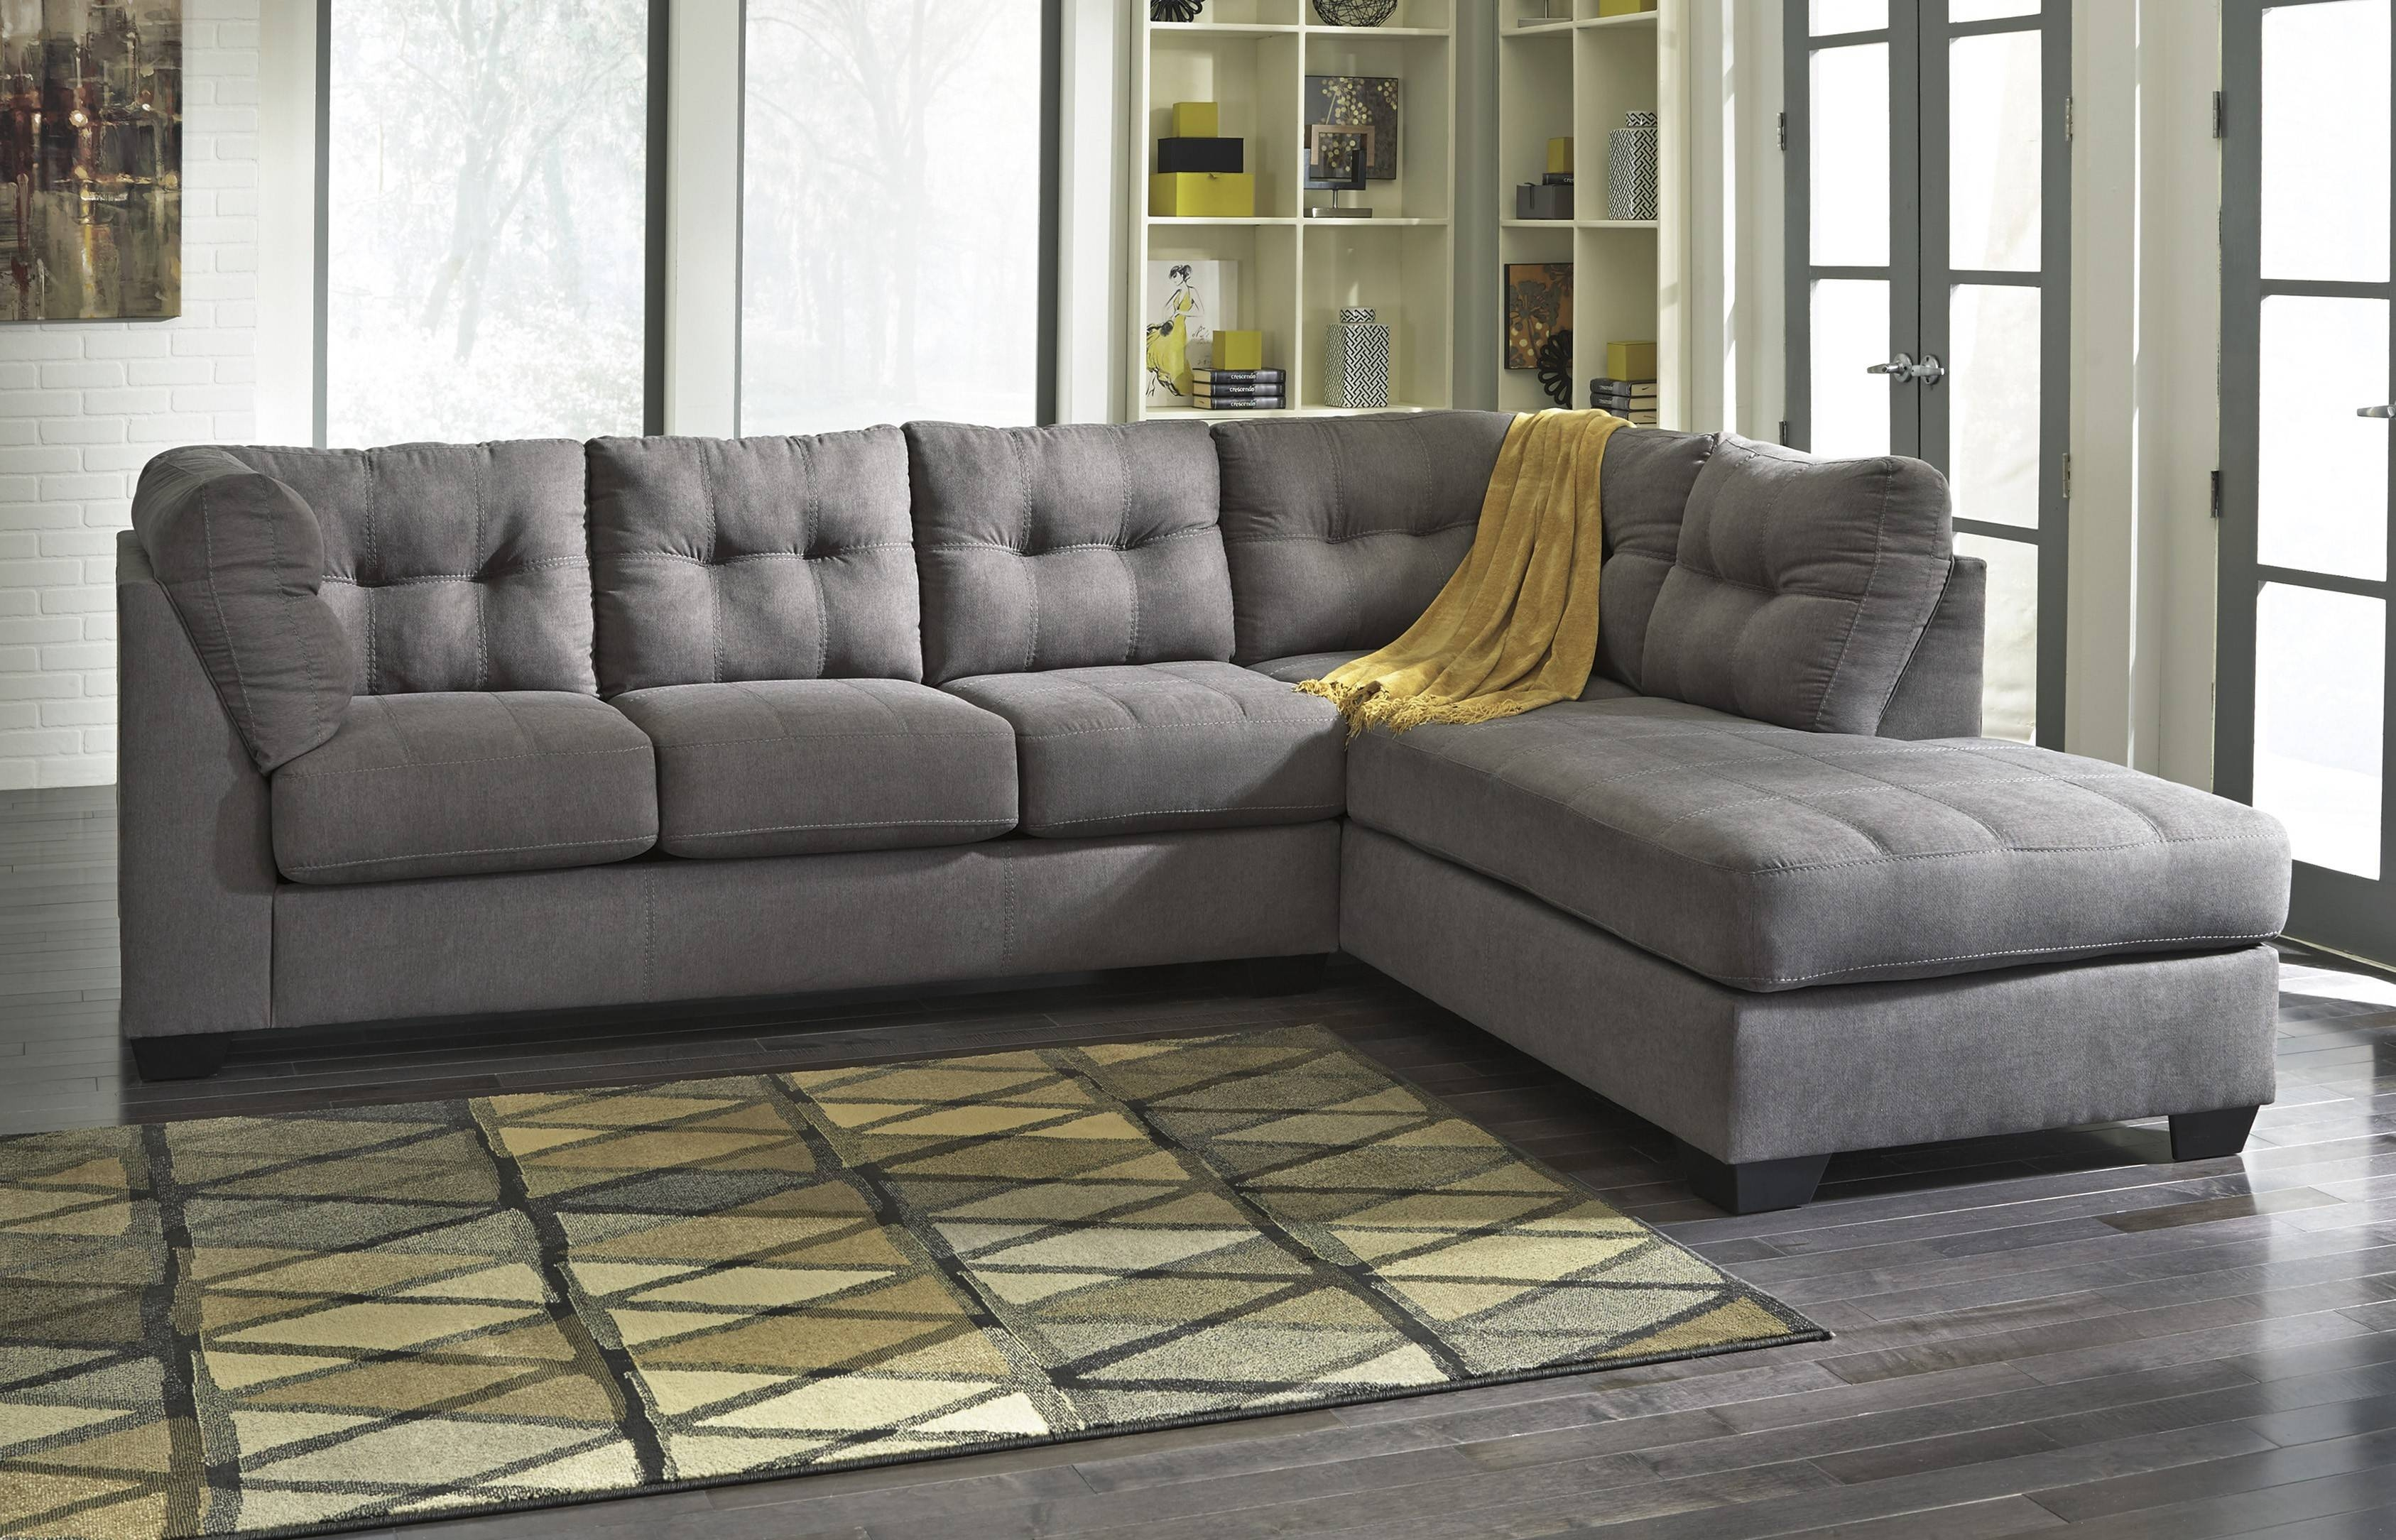 Sofas Center : Ashley Furniture Tufted Sofa Elegant Living Room within Ashley Tufted Sofa (Image 22 of 30)